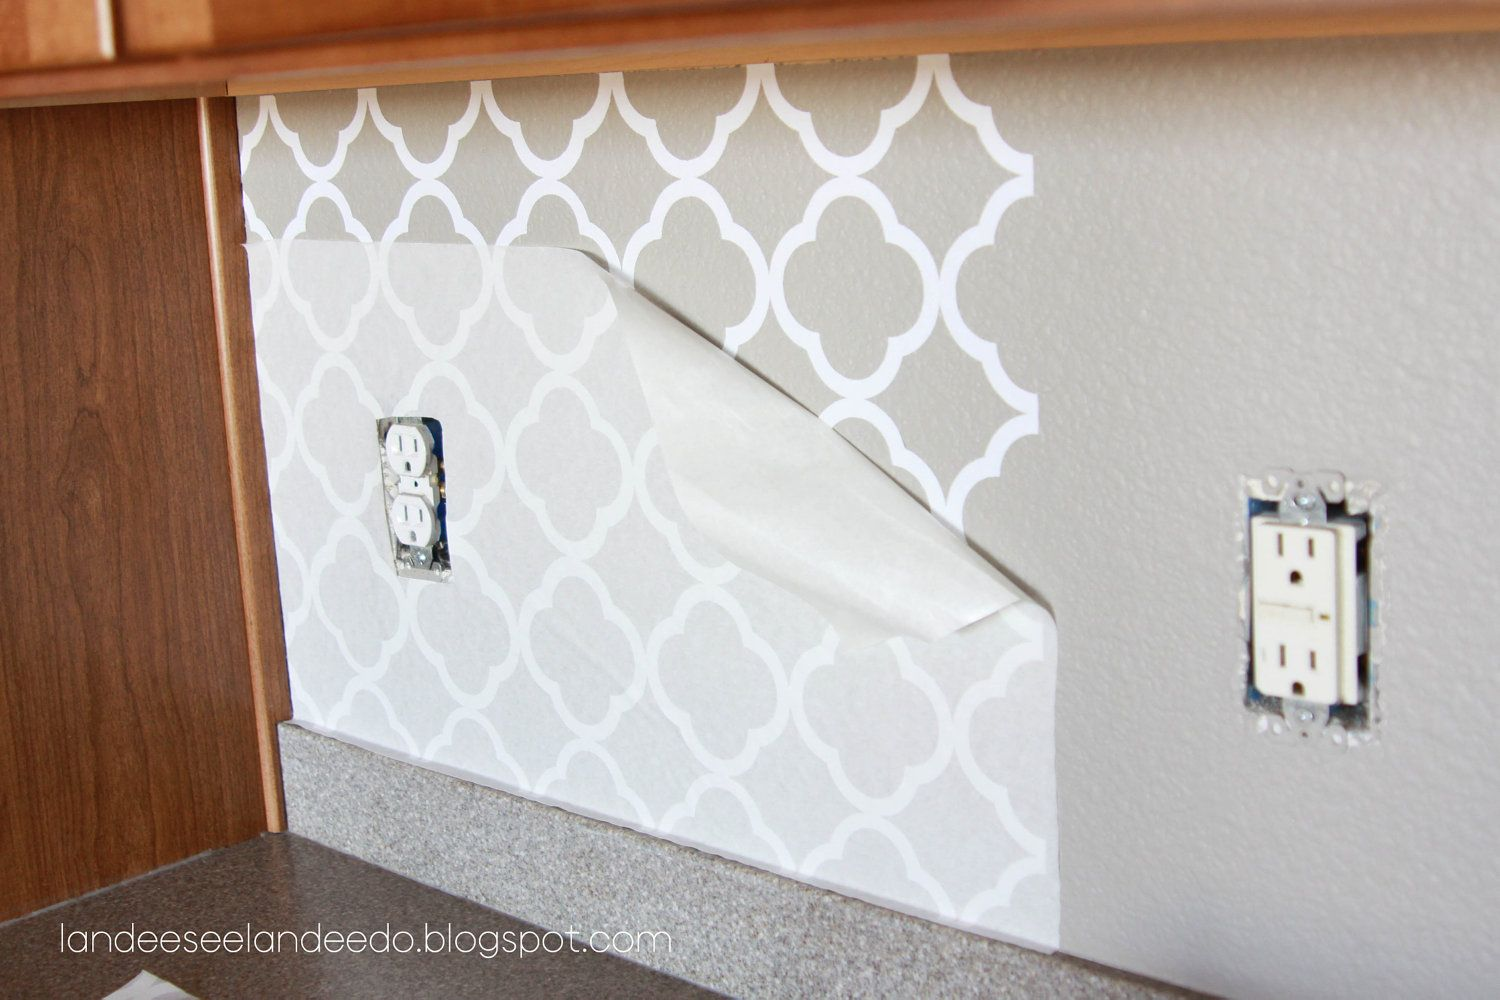 Kitchen backsplash, pantry or bathroom upgrade - vinyl quatrefoil design -. $5.50, via Etsy. Genius idea!